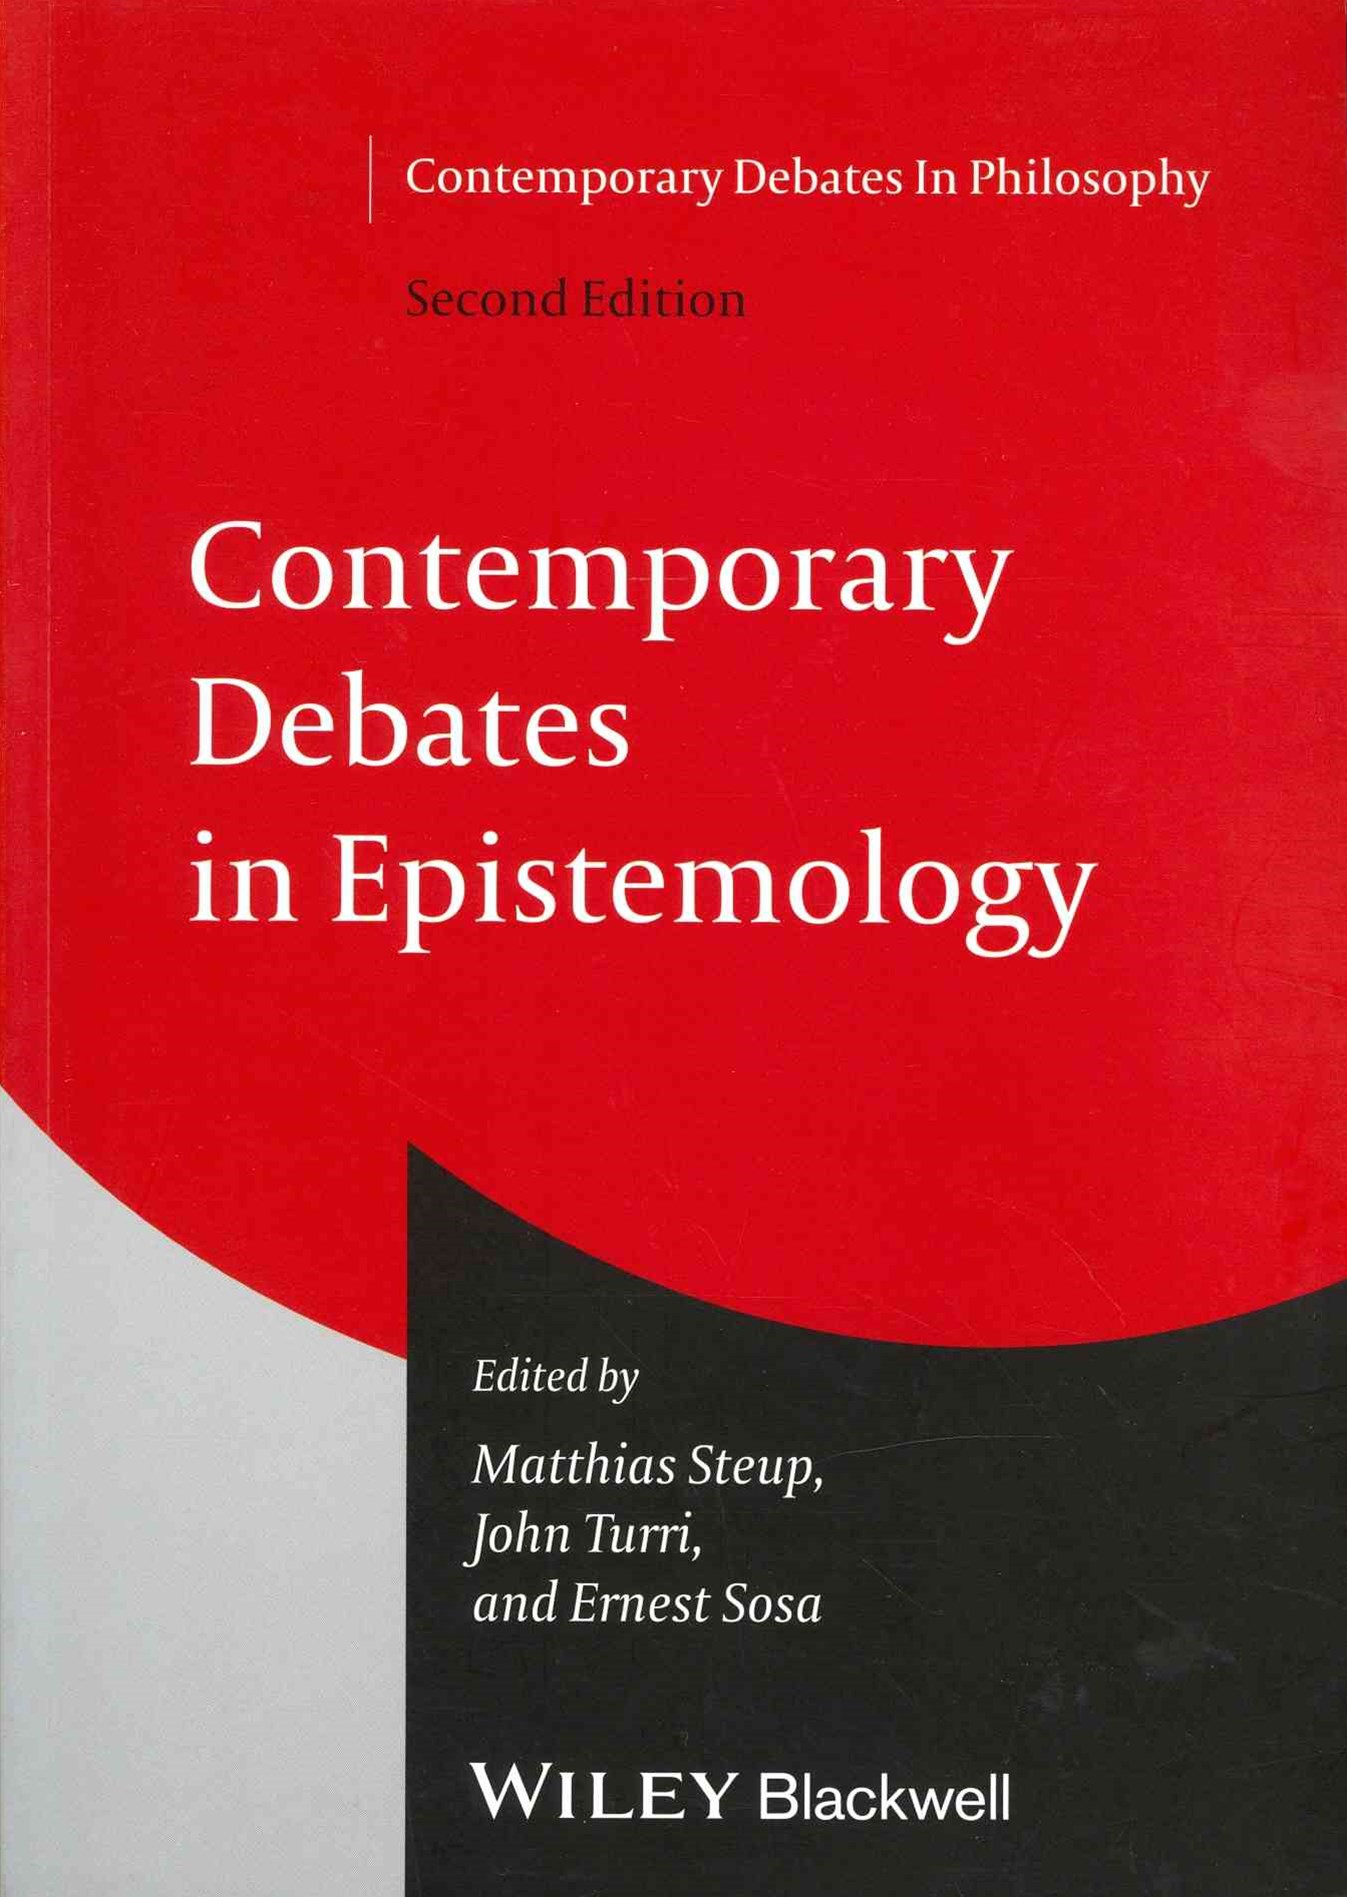 Contemporary Debates in Epistemology, Second Edition